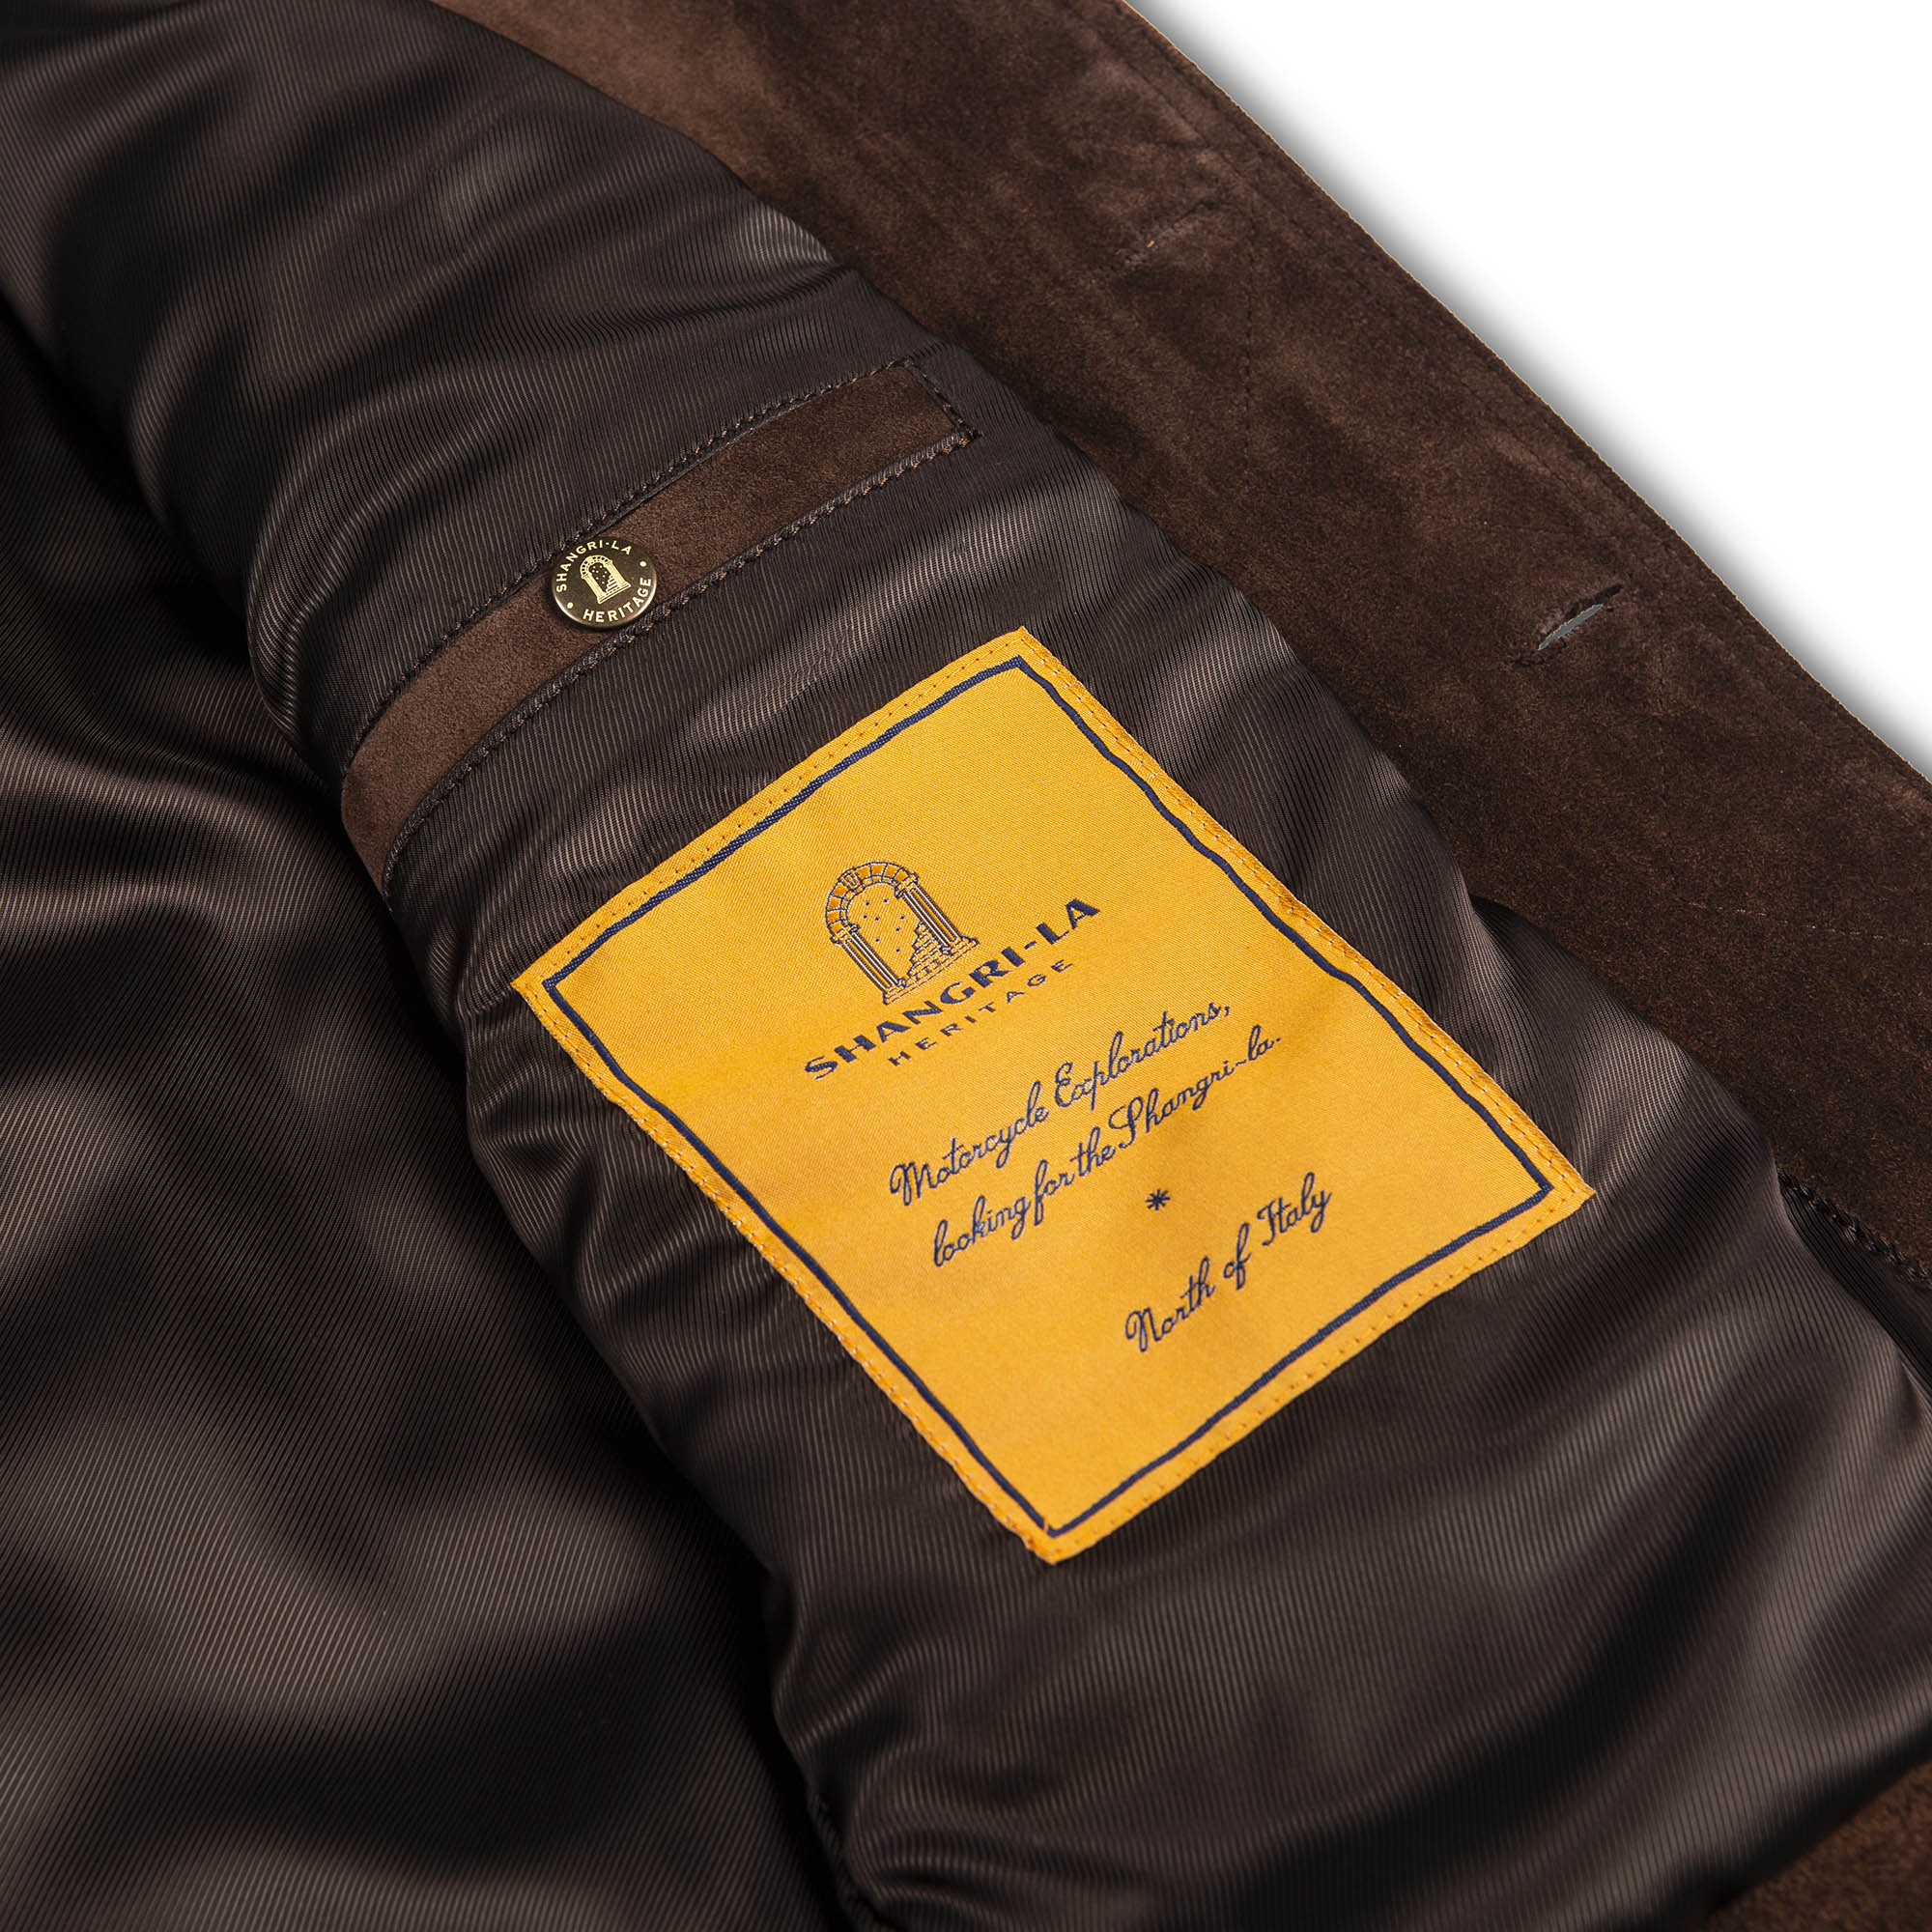 shangri-la-heritage-terracotta-brown-calfskin-suede-jacket-still-life-front-pocket-label